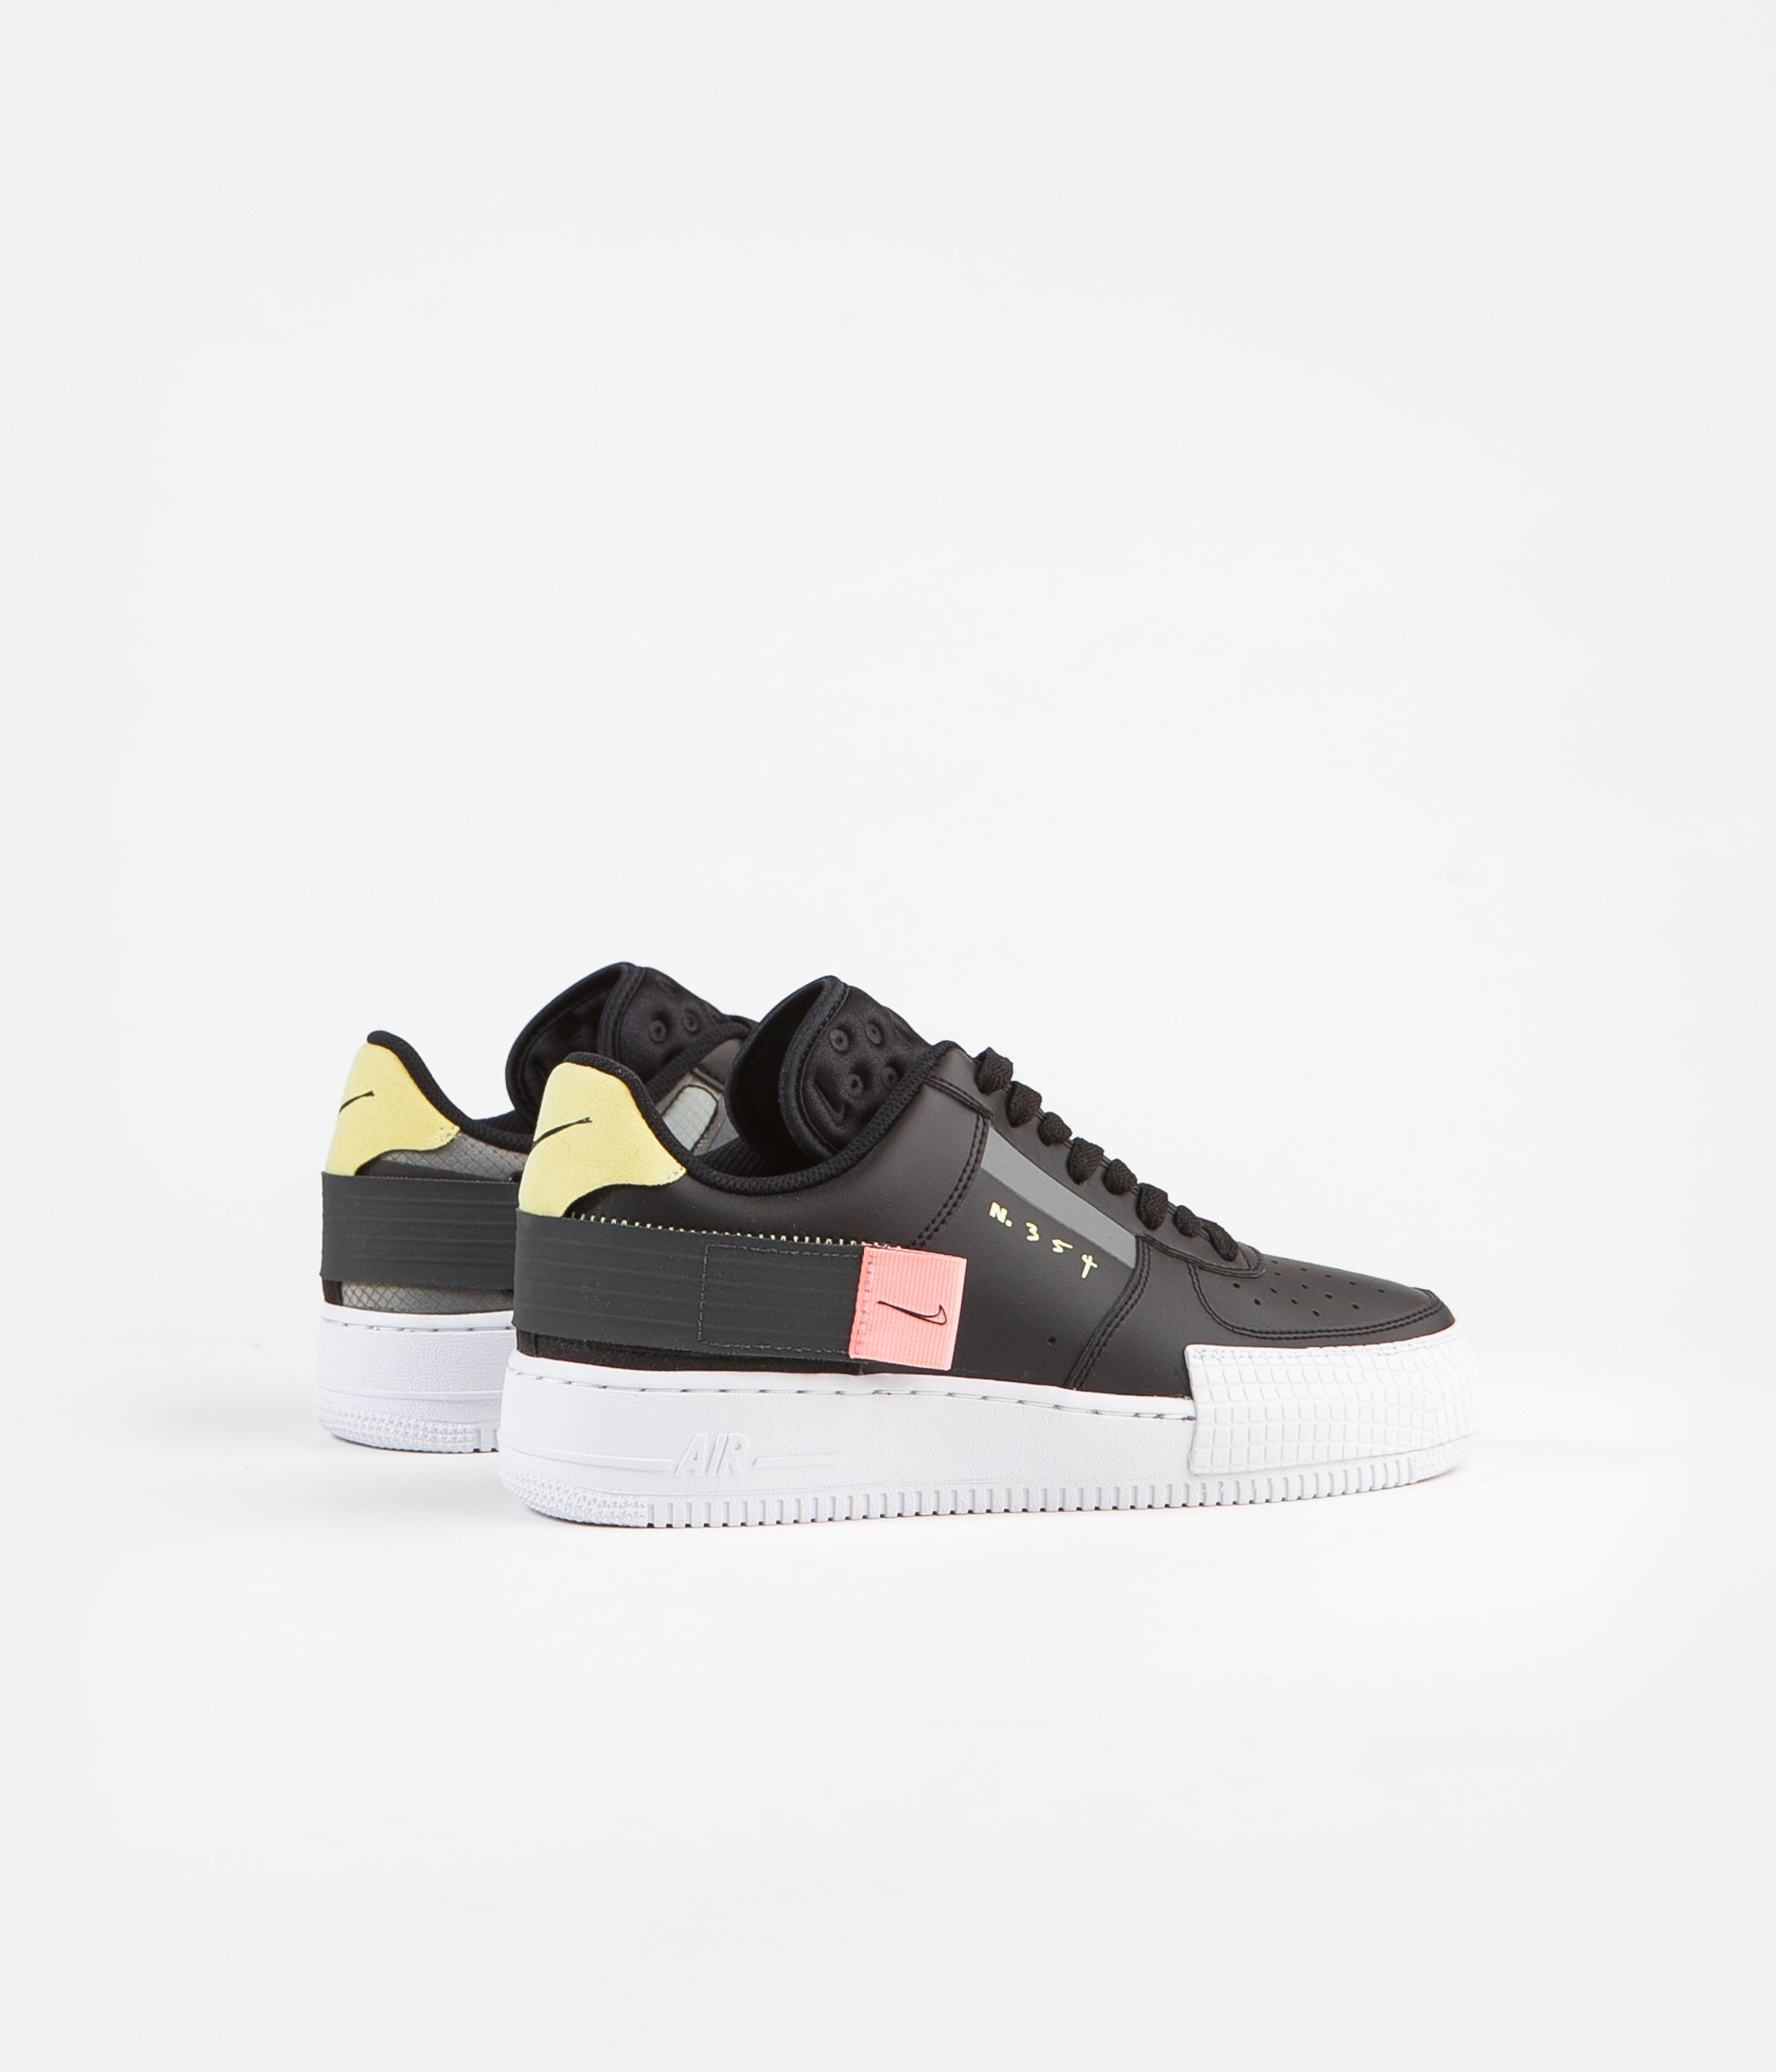 Nike Air Force 1 Type Shoes Black Anthracite Zinnia